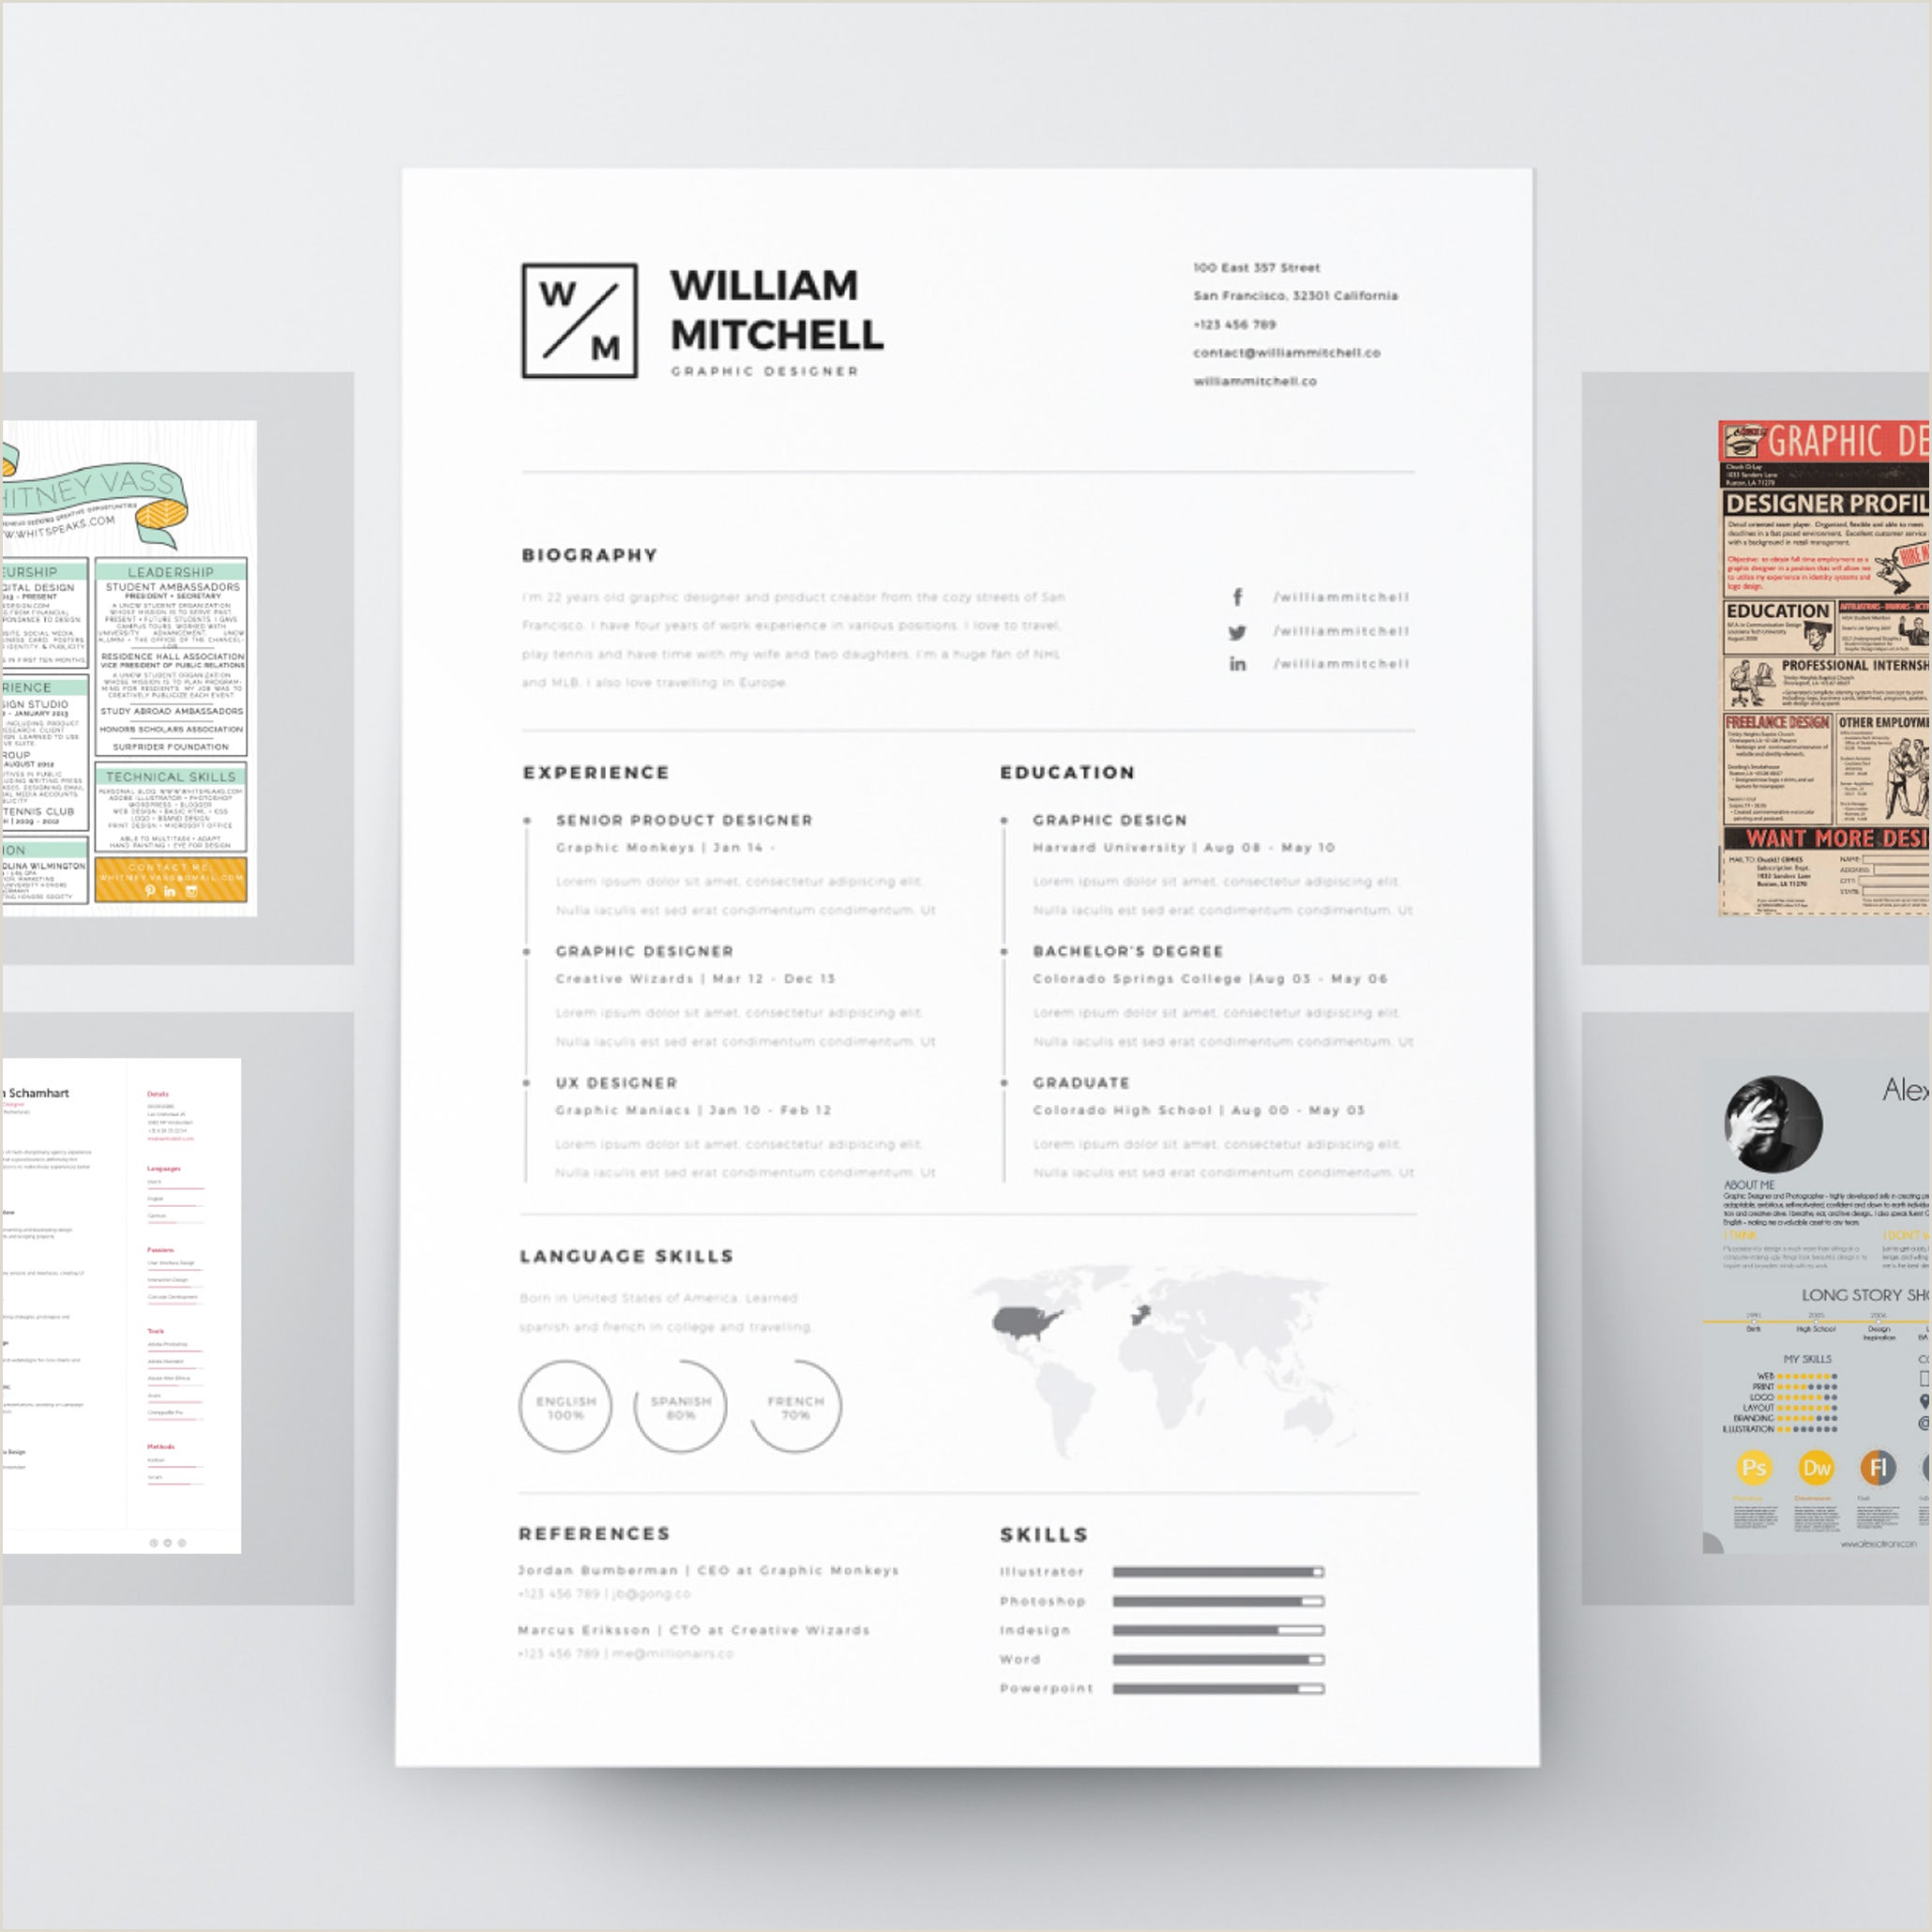 7 resume design principles that will you hired 99designs